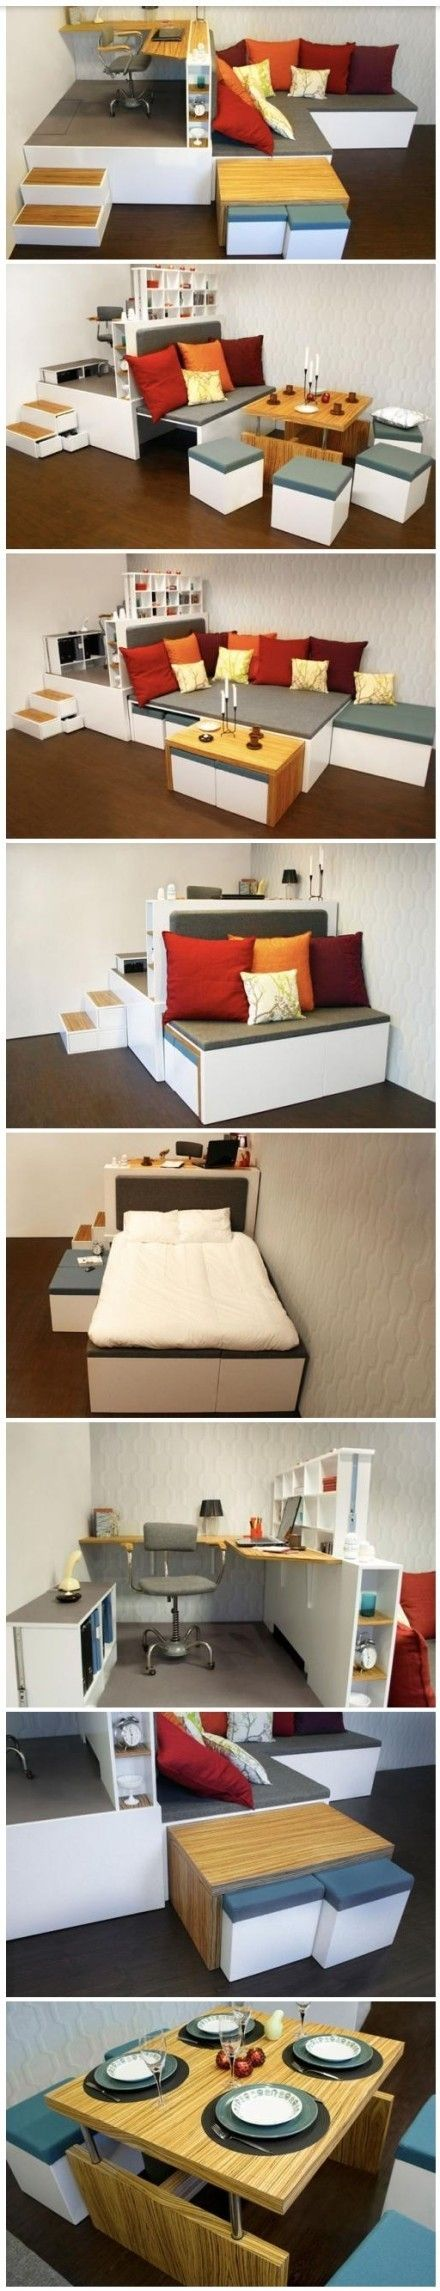 216 best tiny house rv ideas images on pinterest furniture